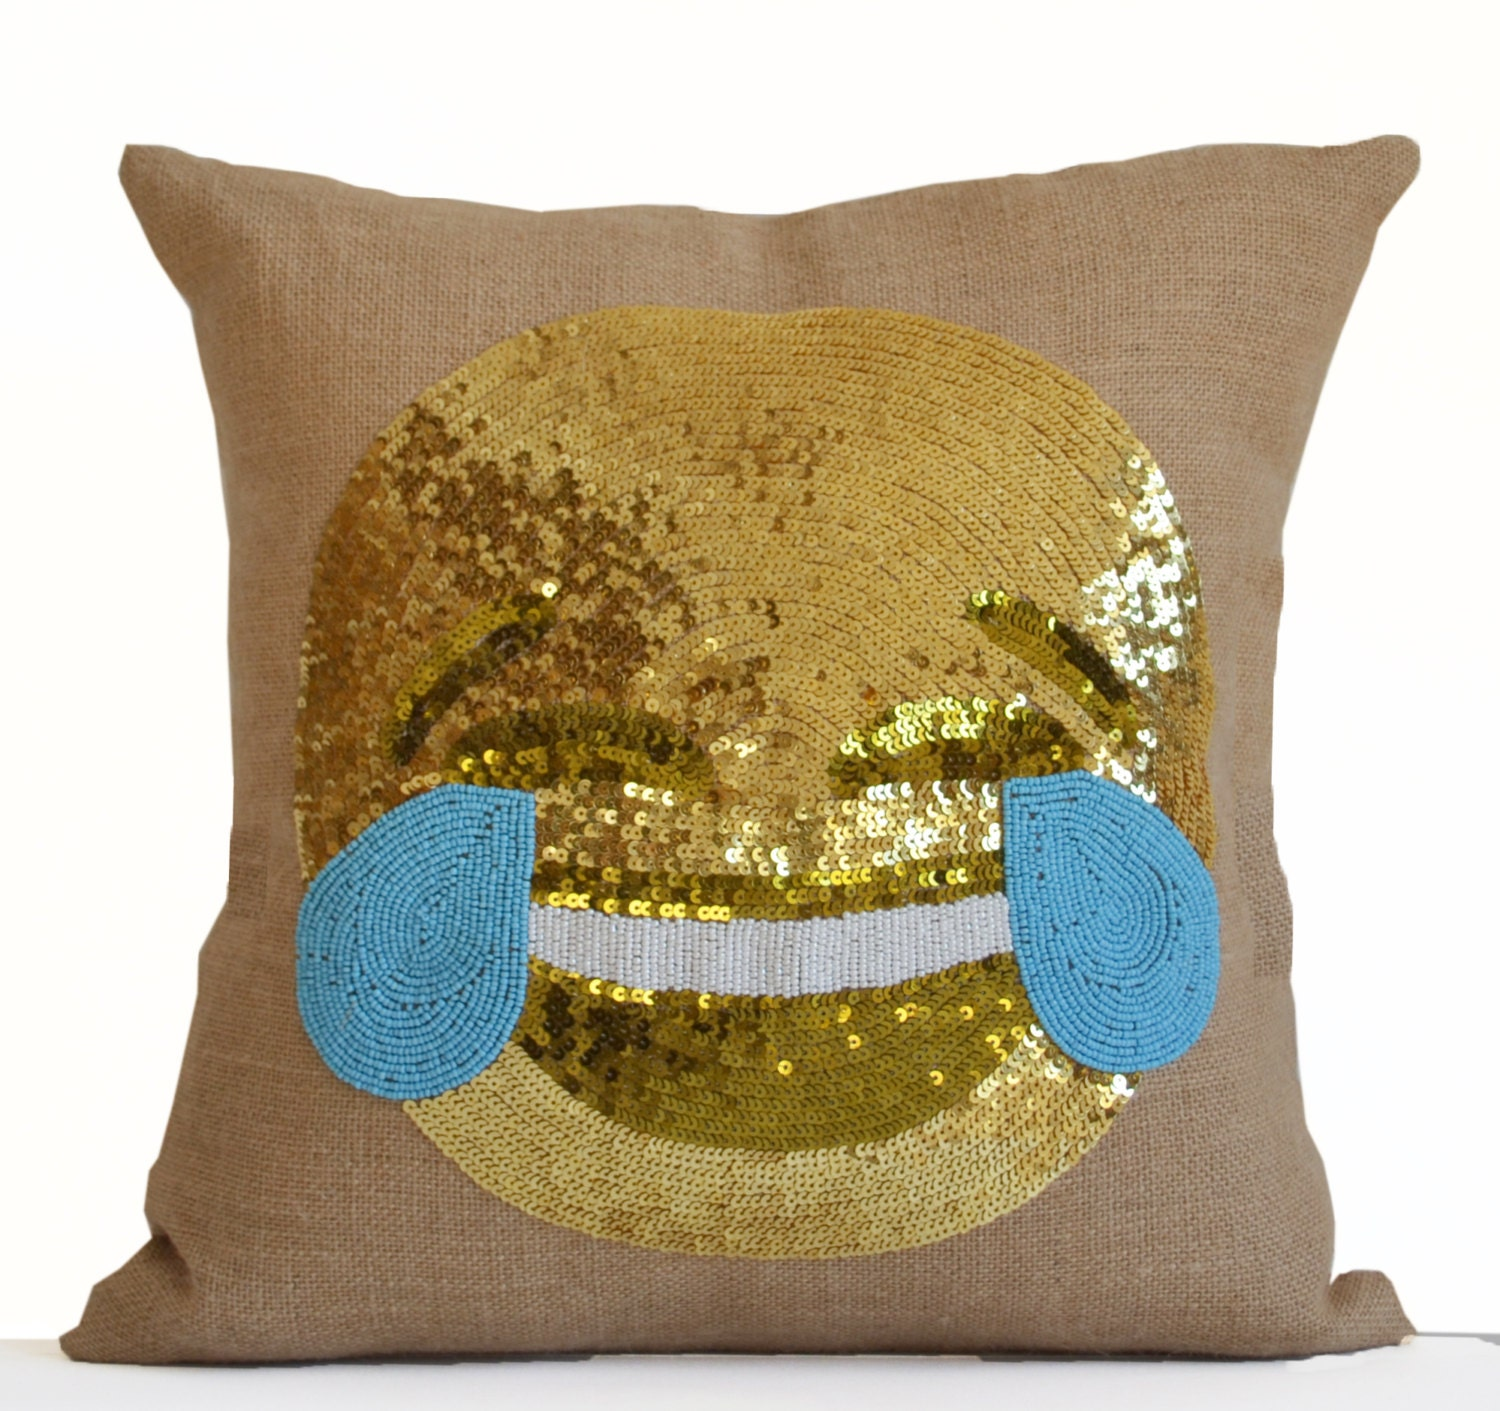 Burlap Throw Pillows Etsy : Happy Face Throw Pillow Cover in Natural Burlap Embellished